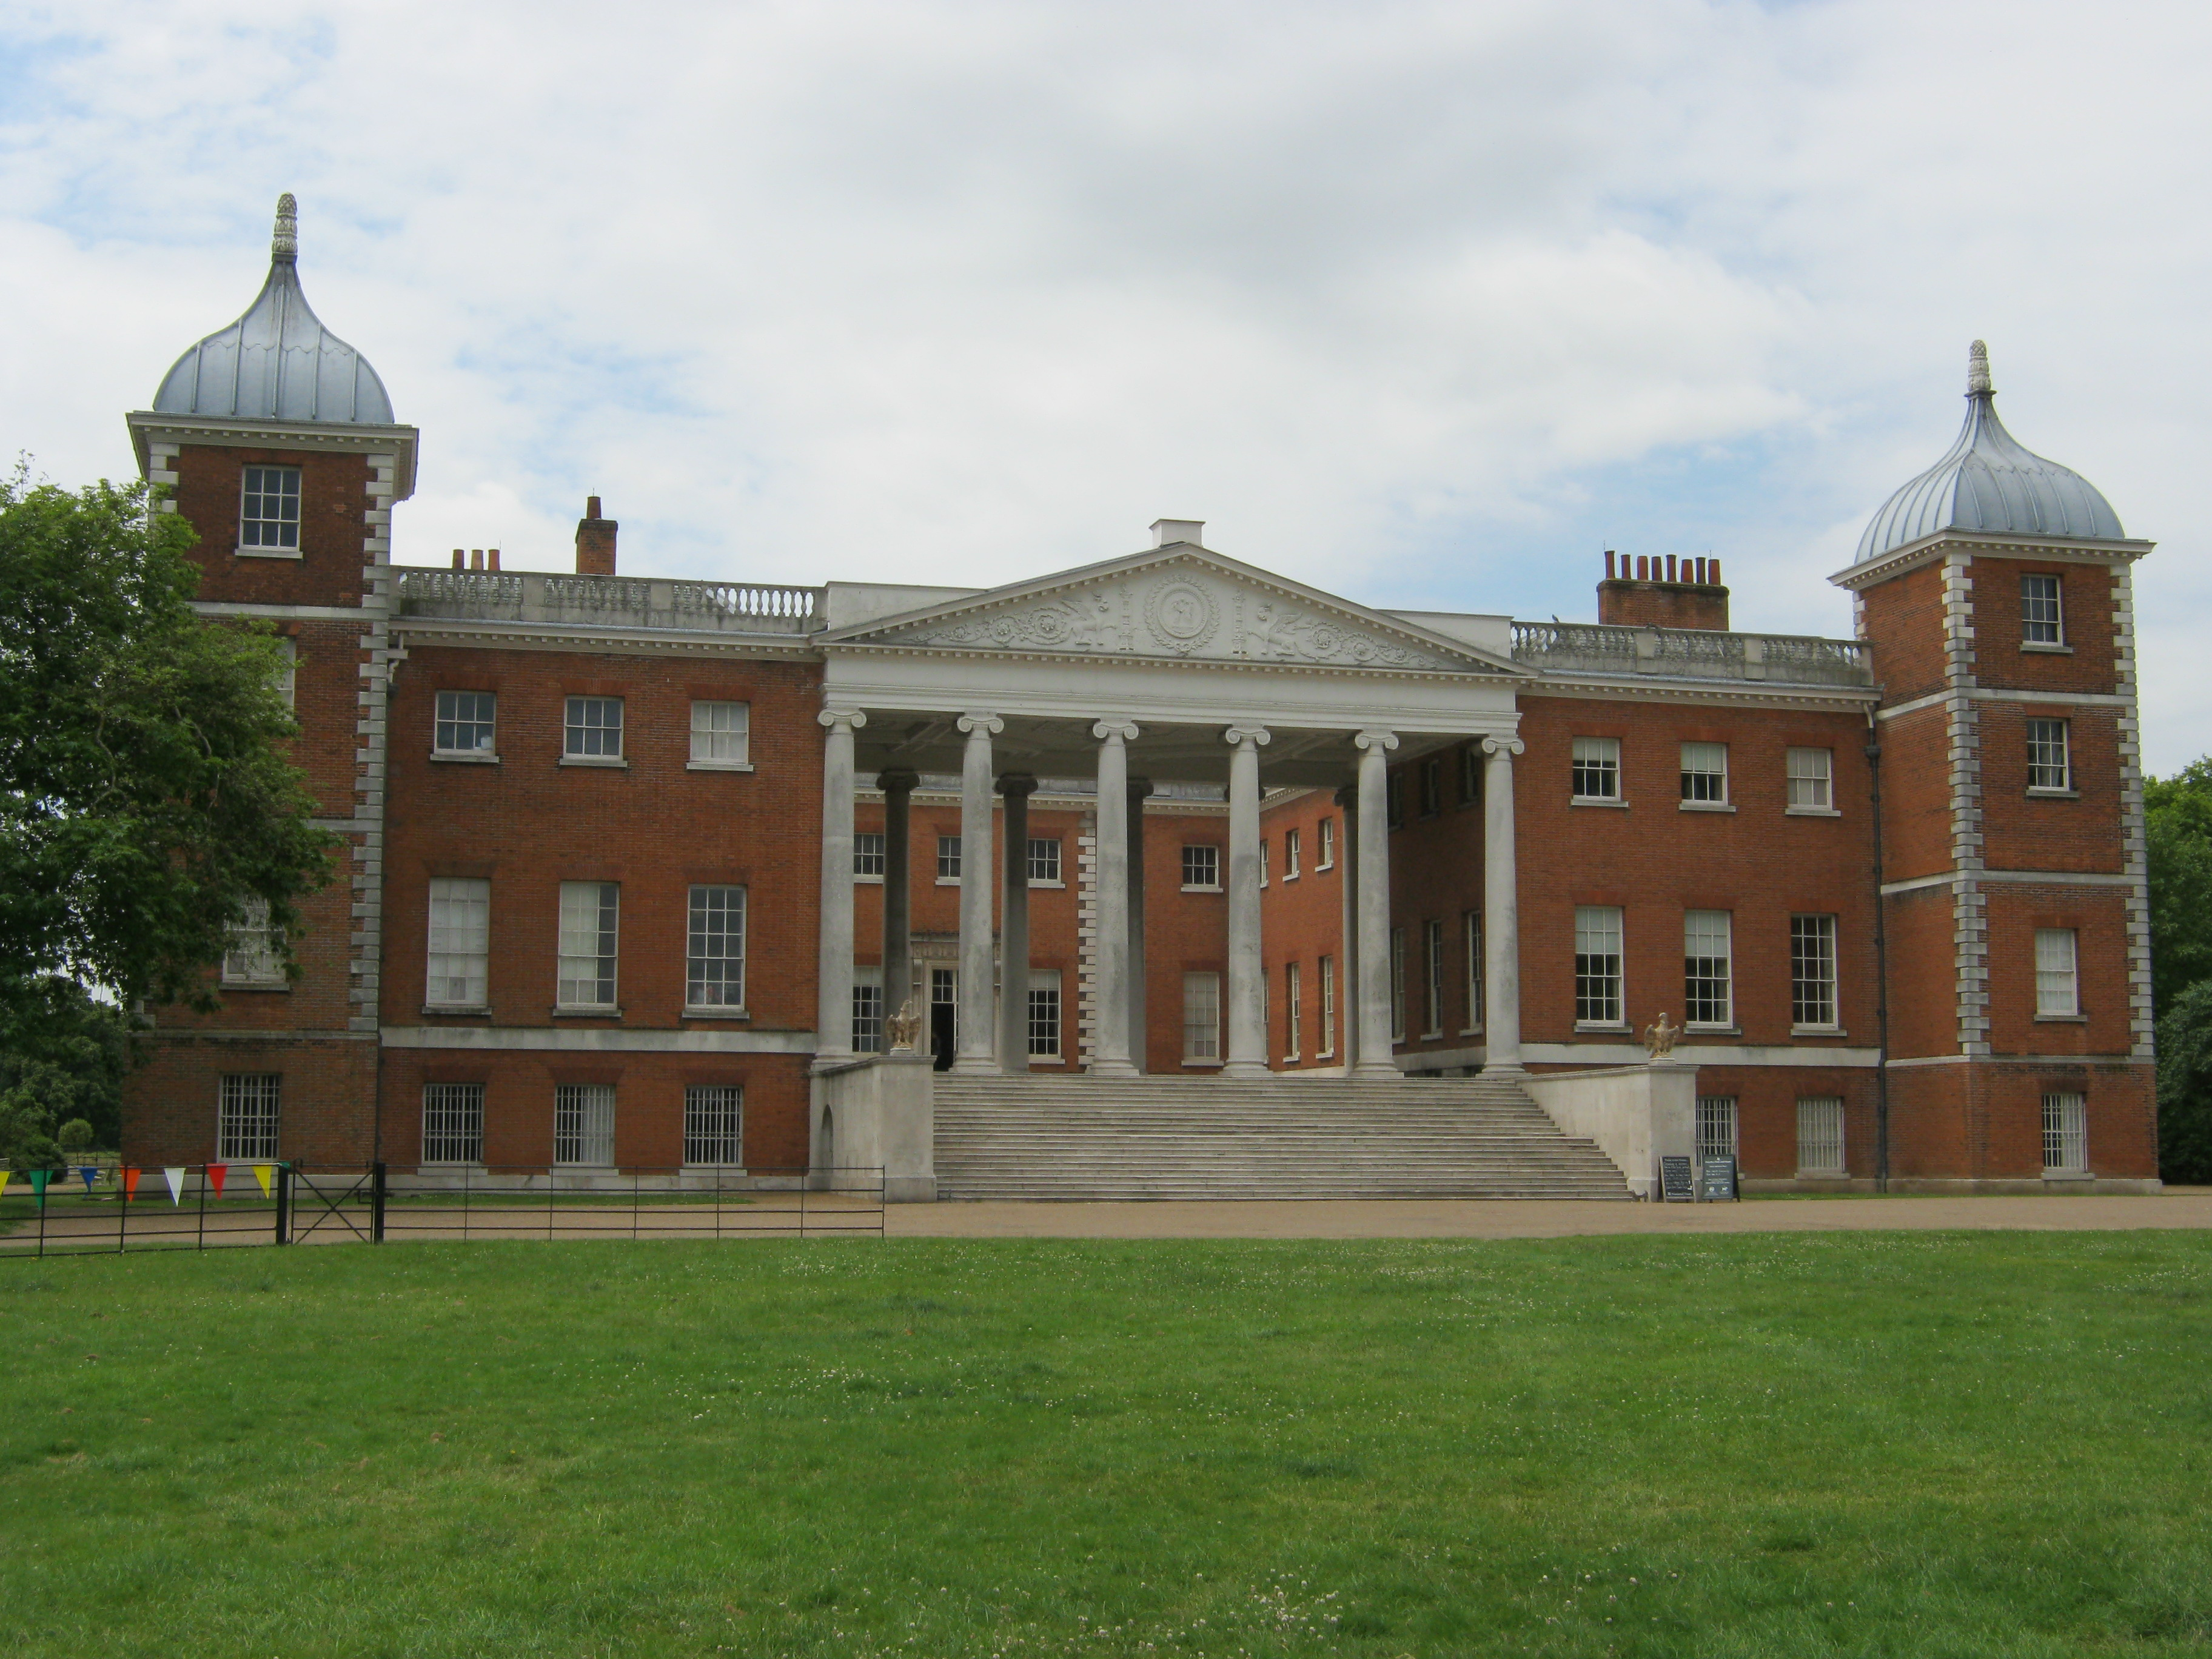 Even With The Nifty Little Satnav That I Bought When Started This Challenge Finding Osterley Park Was Far From Straightforward NT Handbook Helpfully